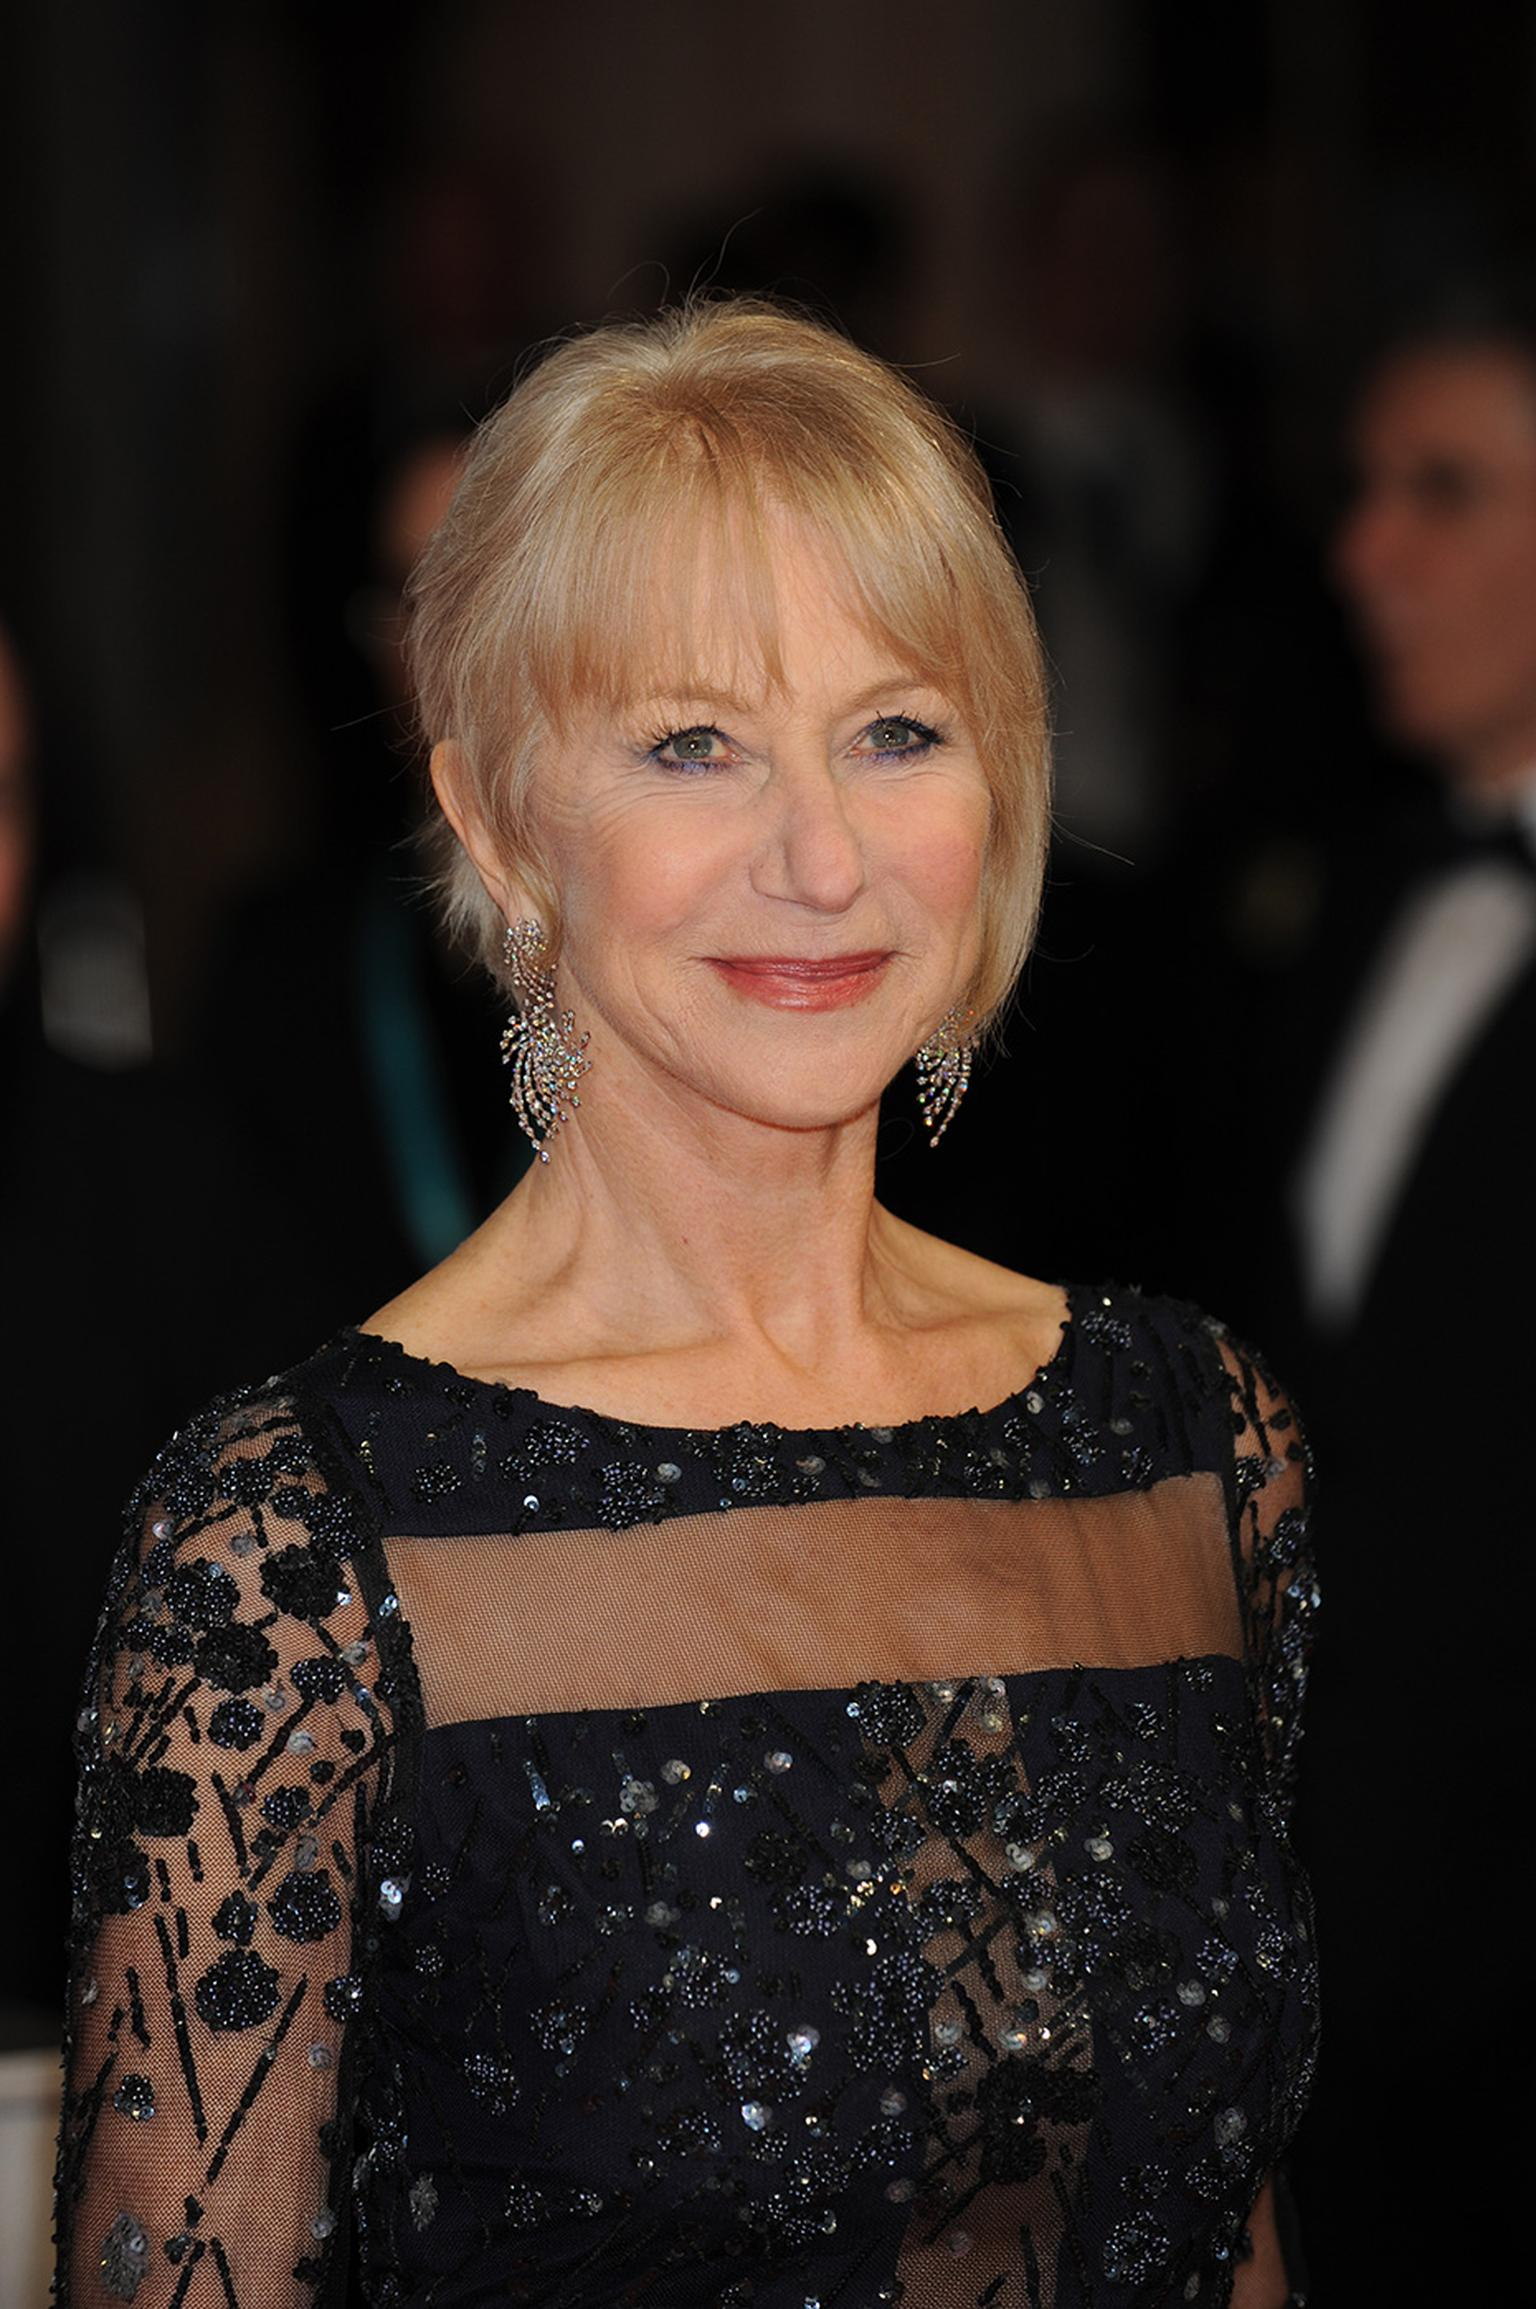 Actress Helen Mirren chose to wear the light-as-air Asprey Storm collection earrings to the 2014 BAFTAs.